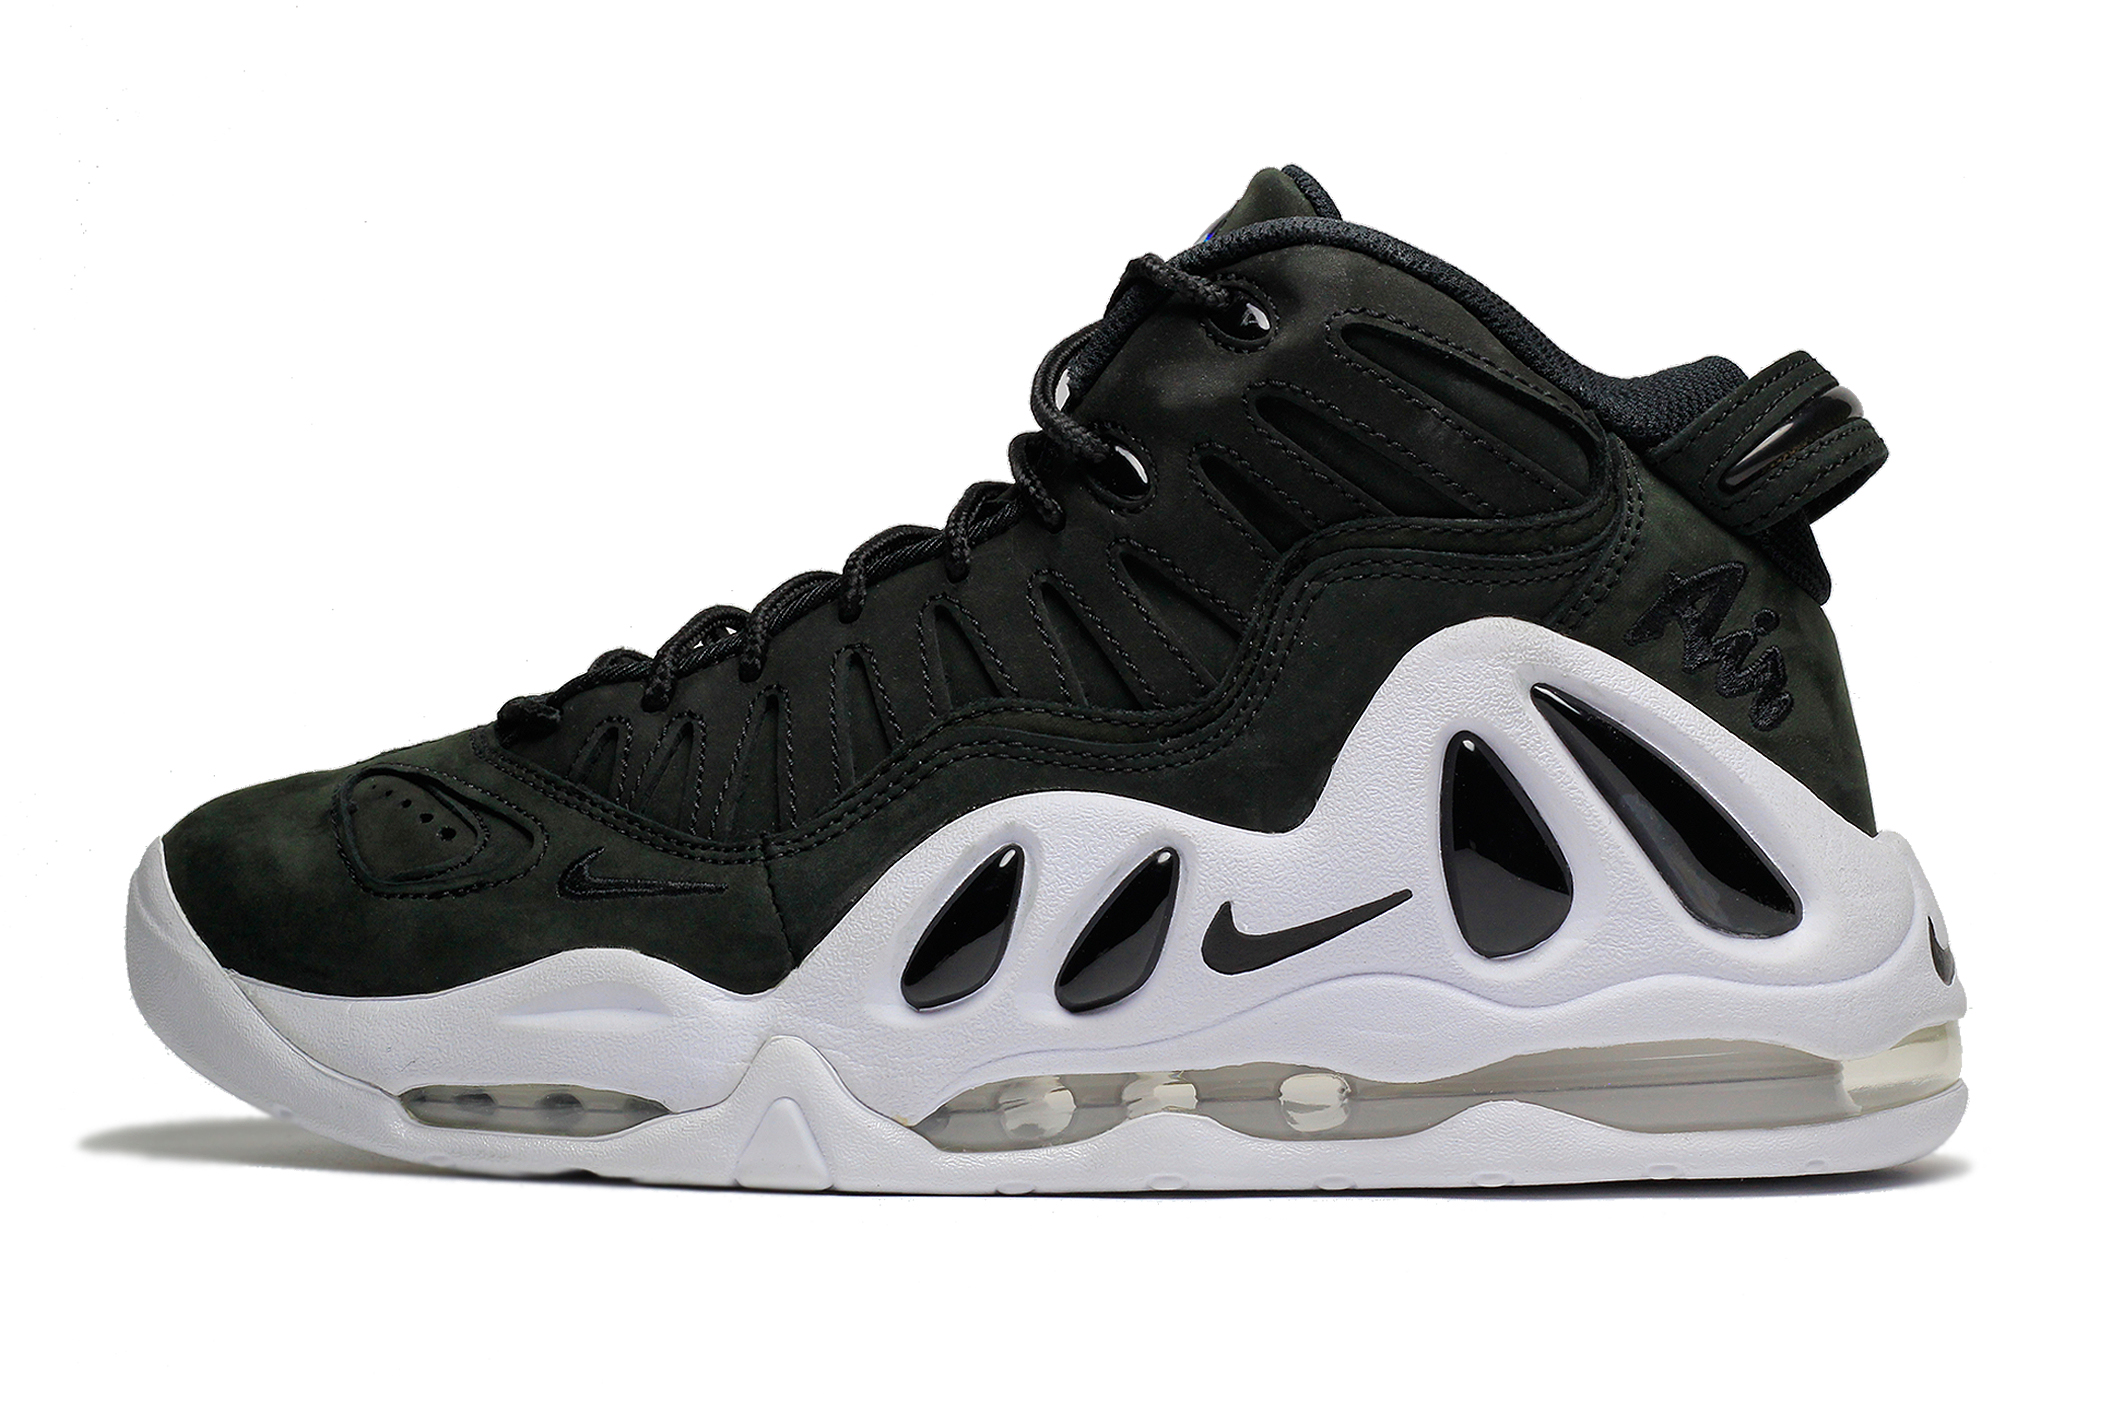 1ec8762218 This Nike Air Max Uptempo